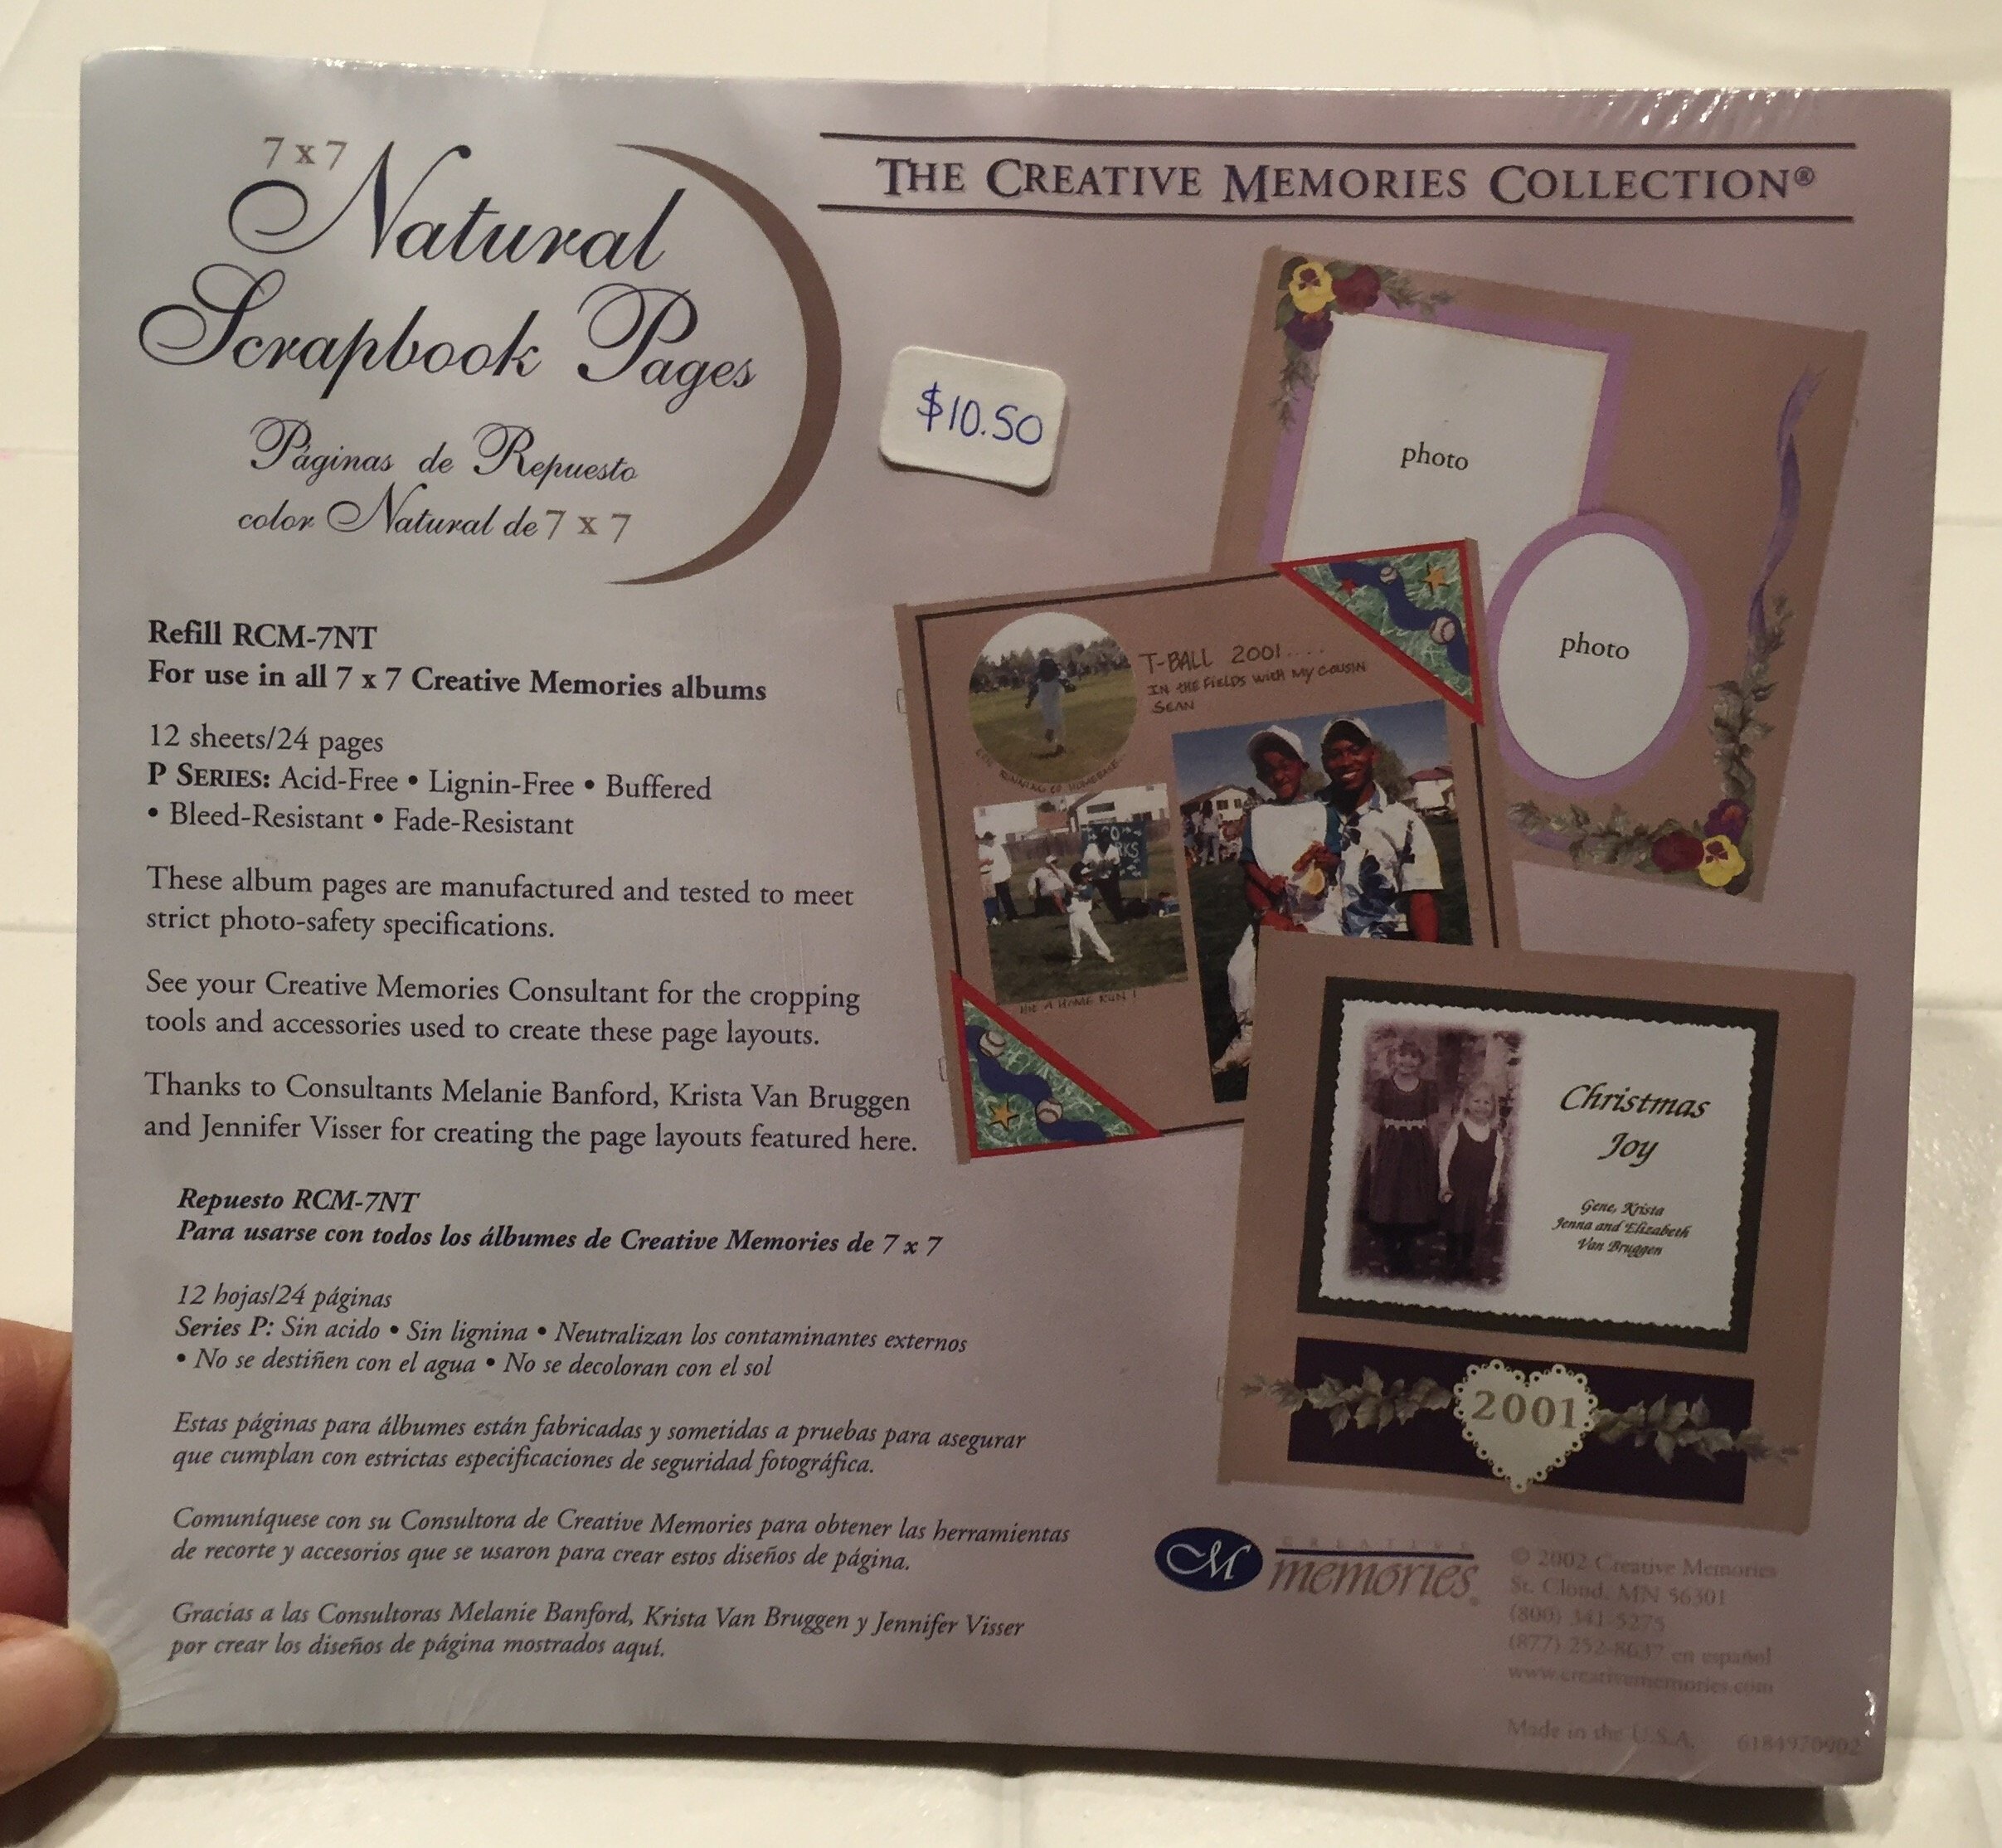 The creative memories 7 x 7 scrapbook pages by Creative Memories